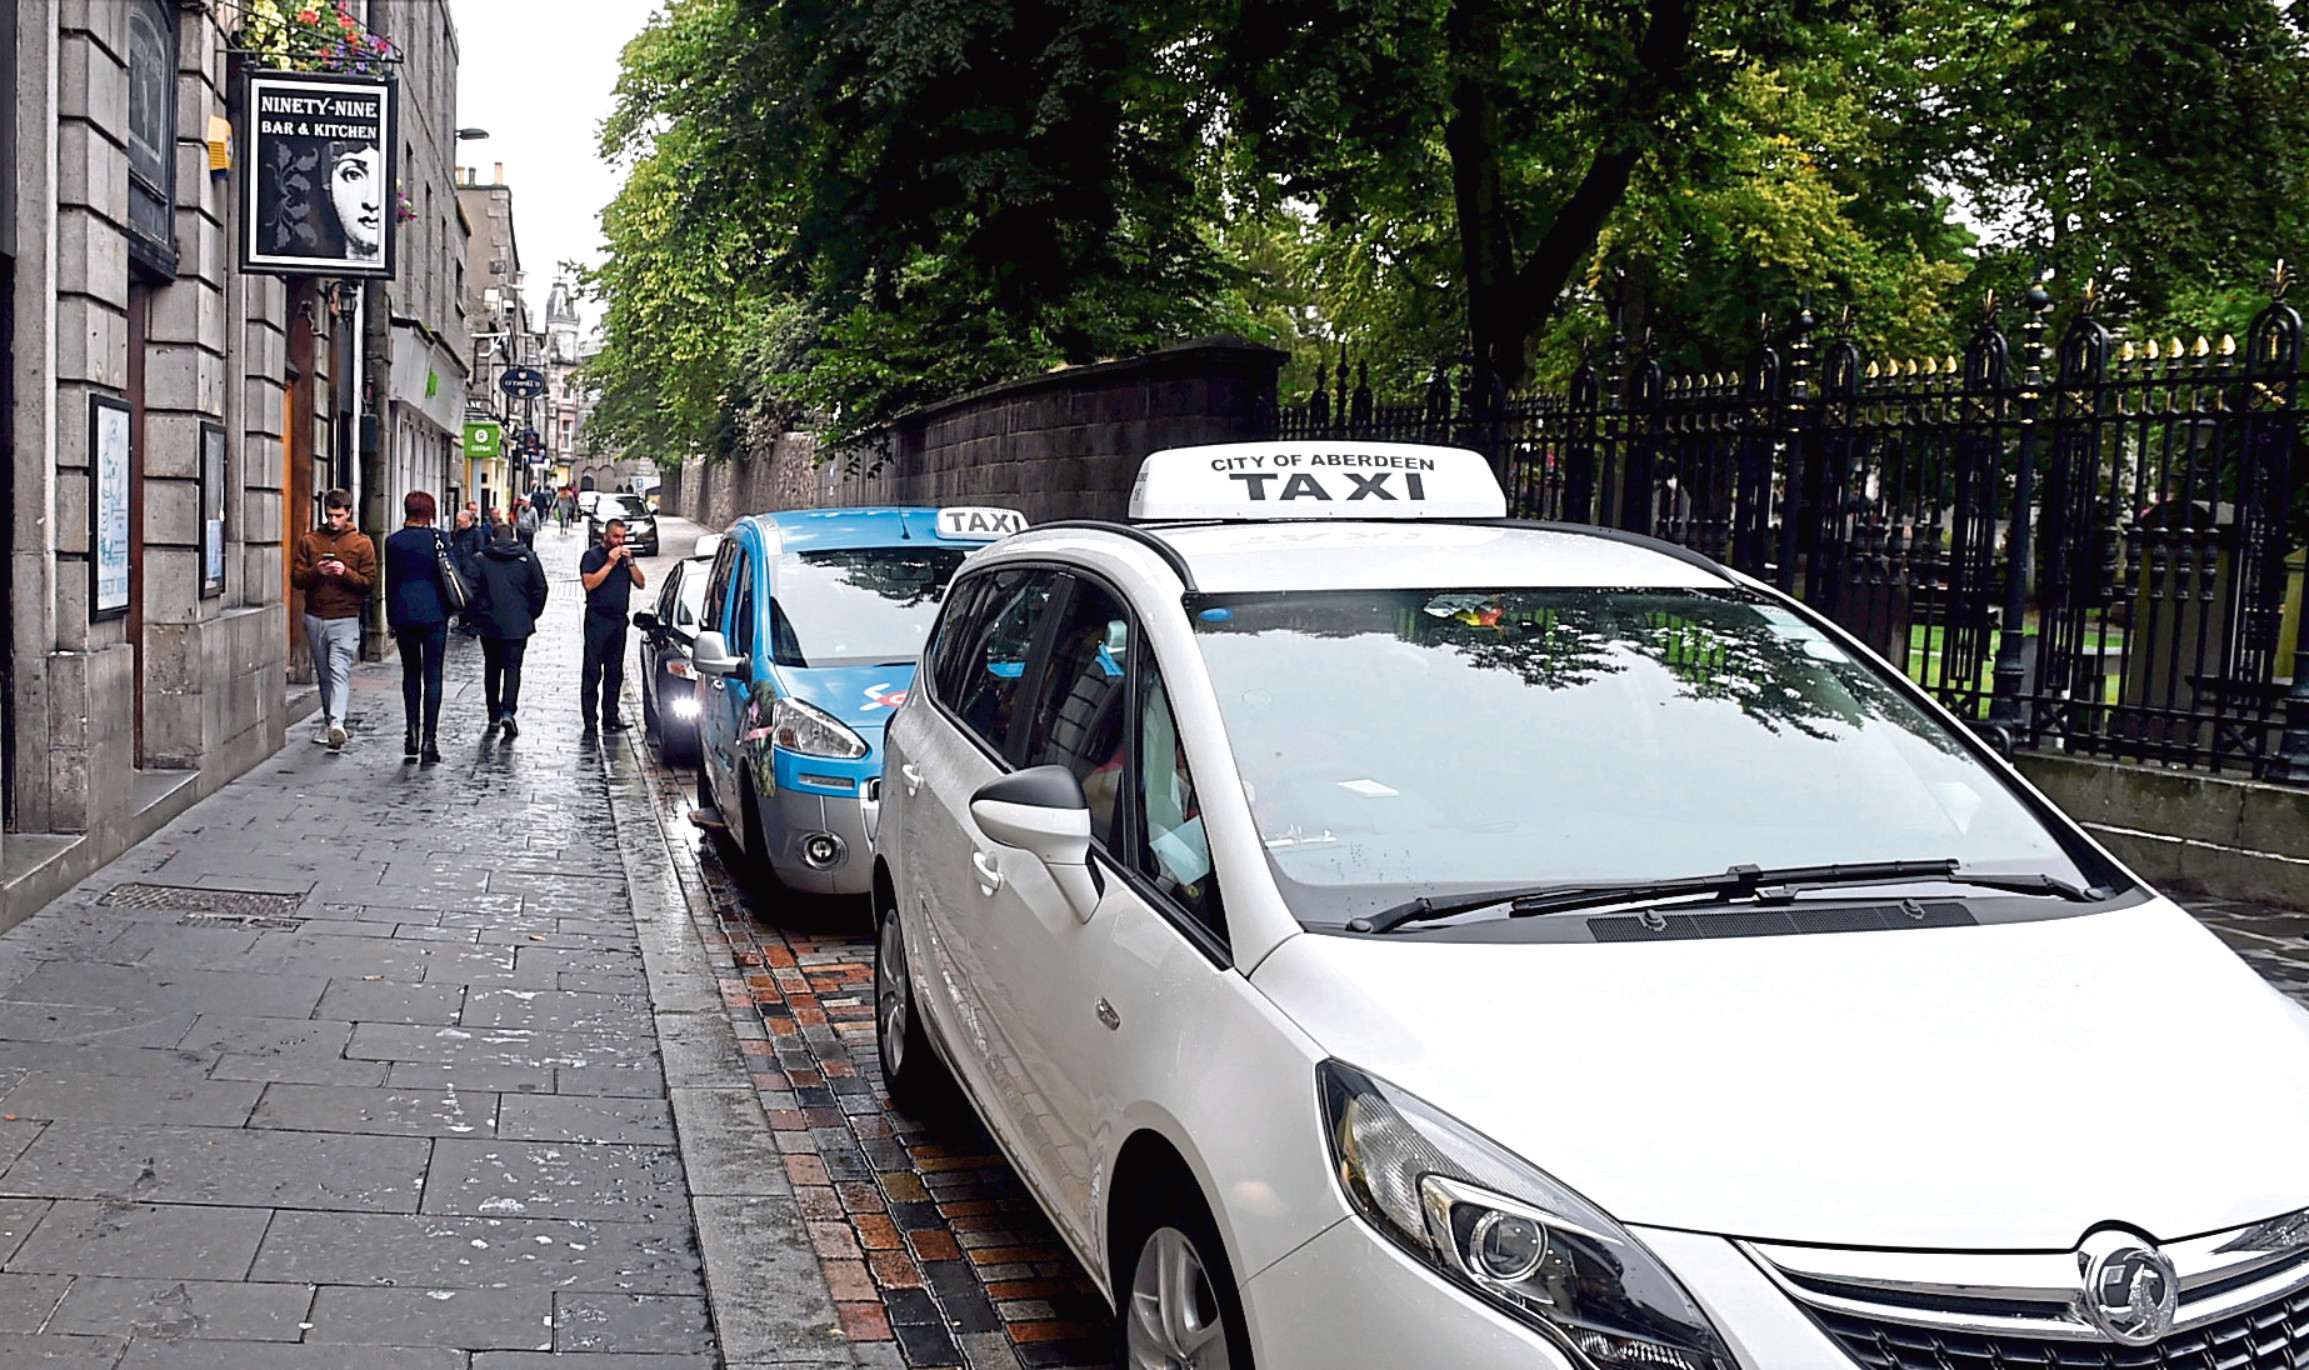 The review is aimed at bringing taxi fares in line with the airport drop-off charge